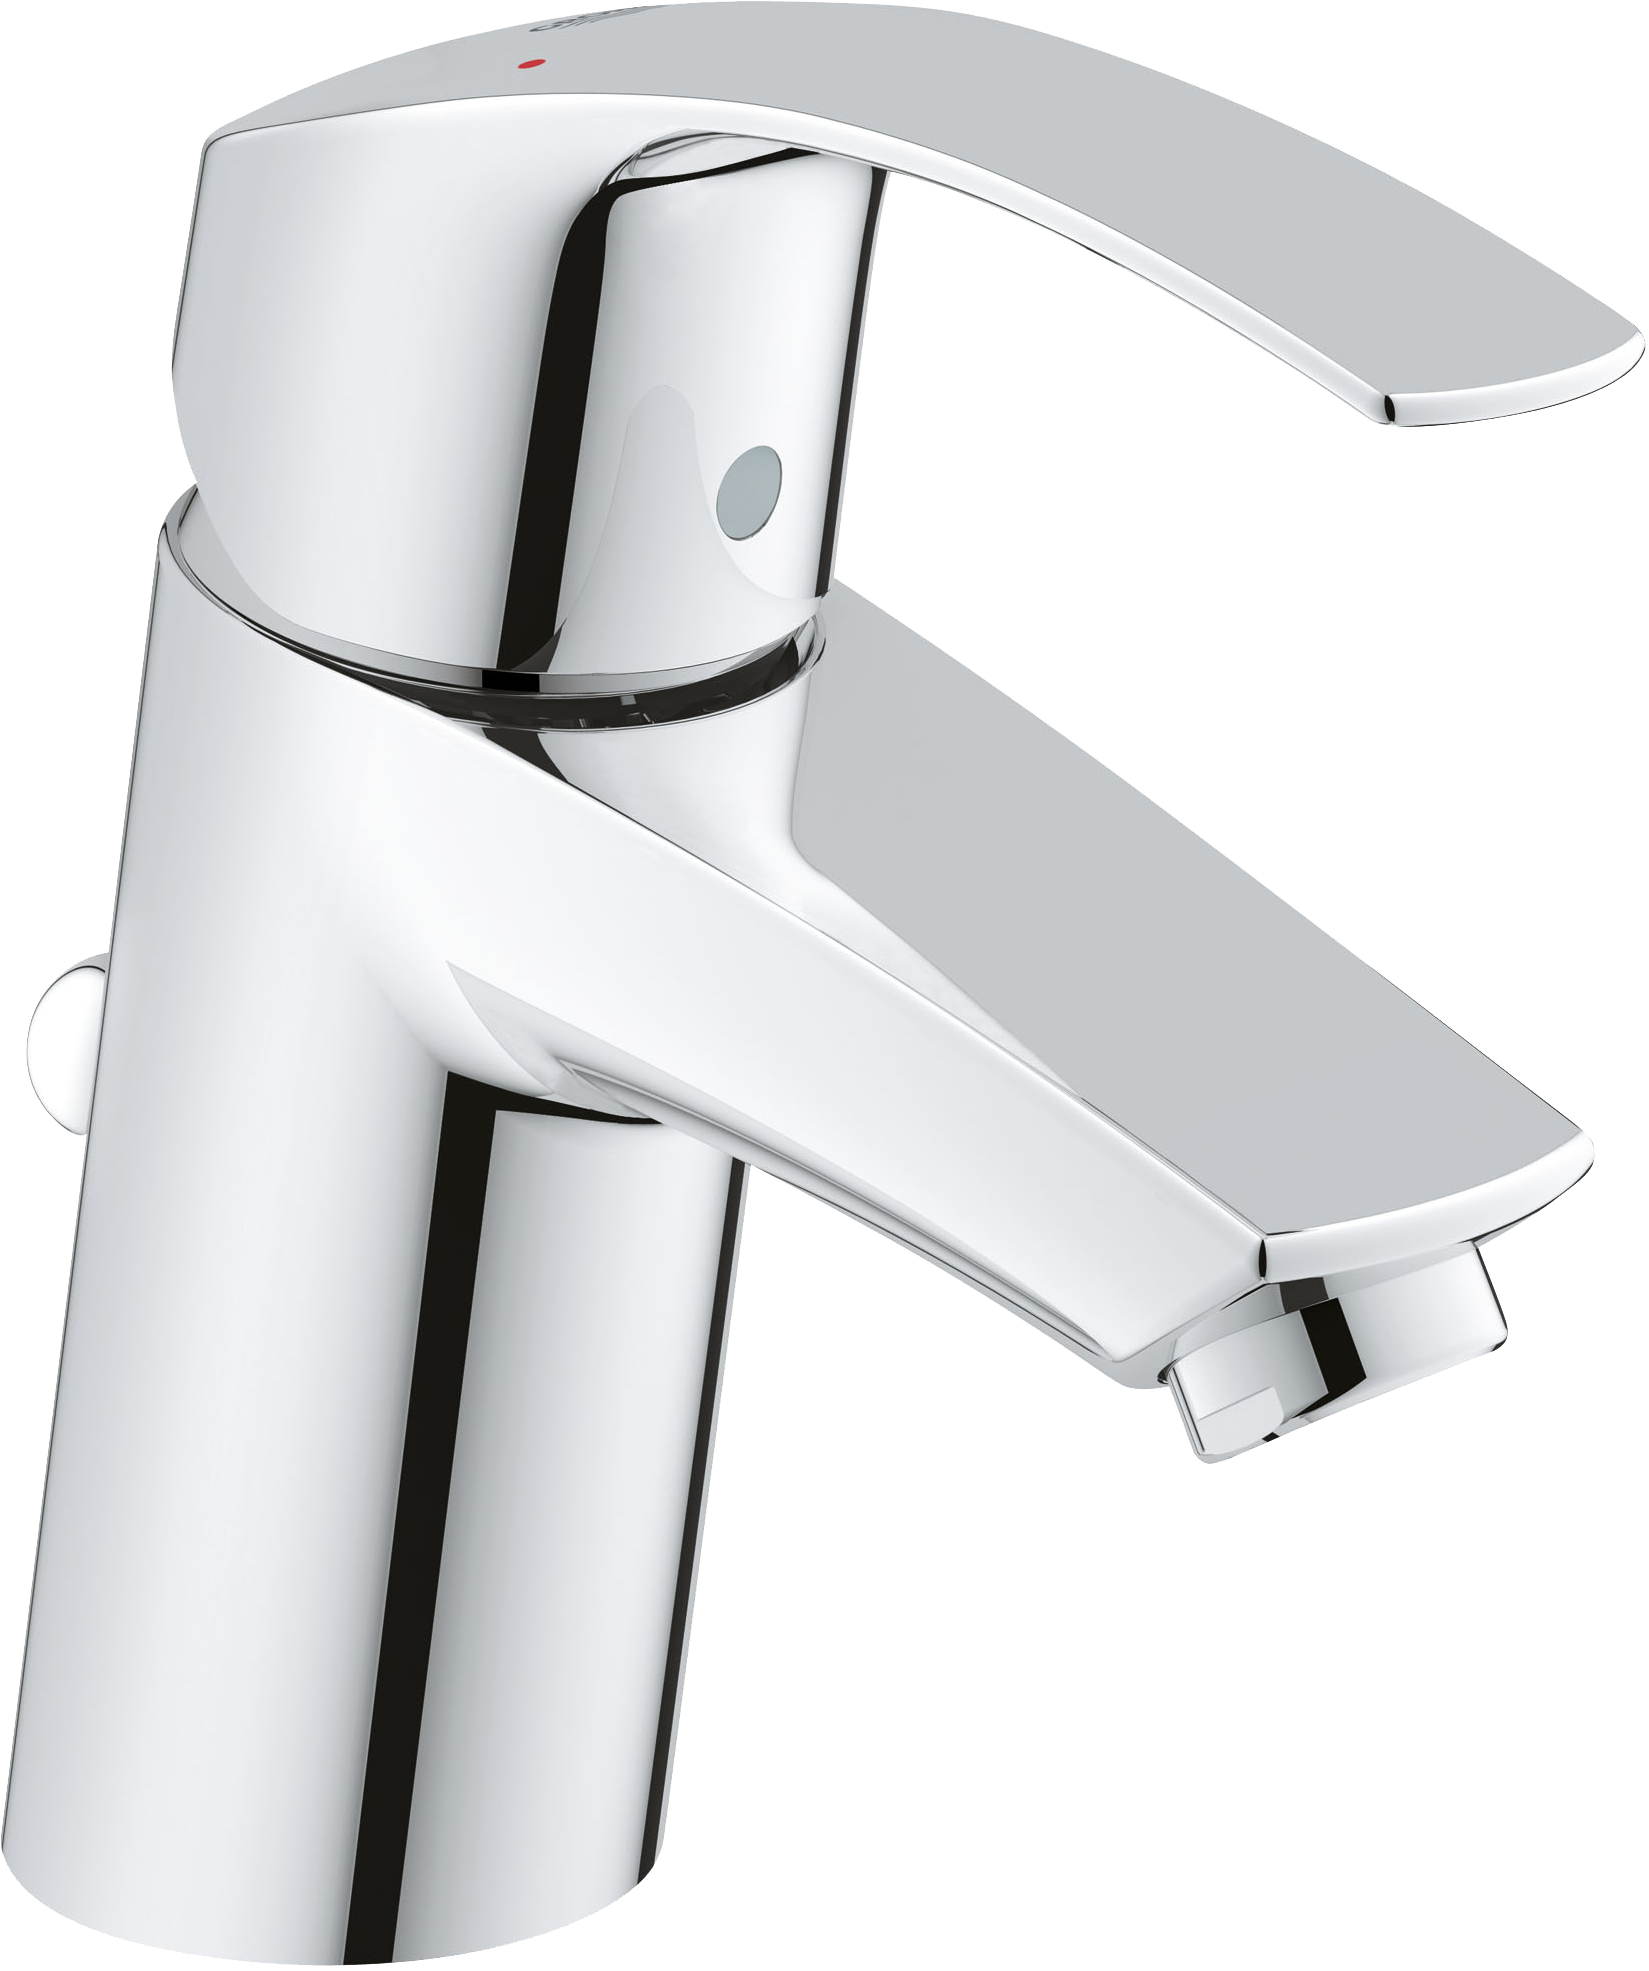 Grohe Eurosmart Basin Mixer Tap with Pop-Up Waste at best online ...